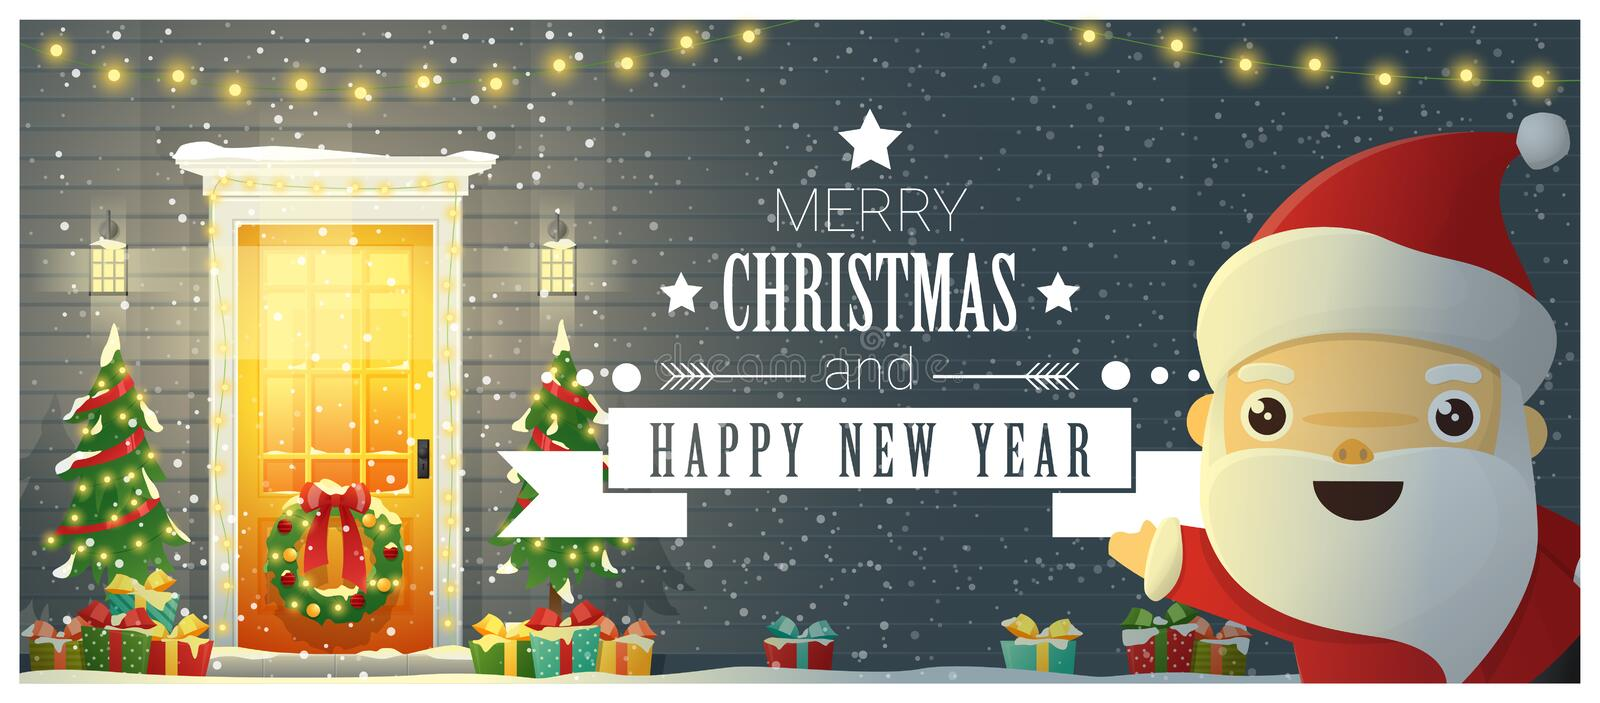 Merry Christmas and Happy New Year background with decorated Christmas front door and Santa Claus stock illustration